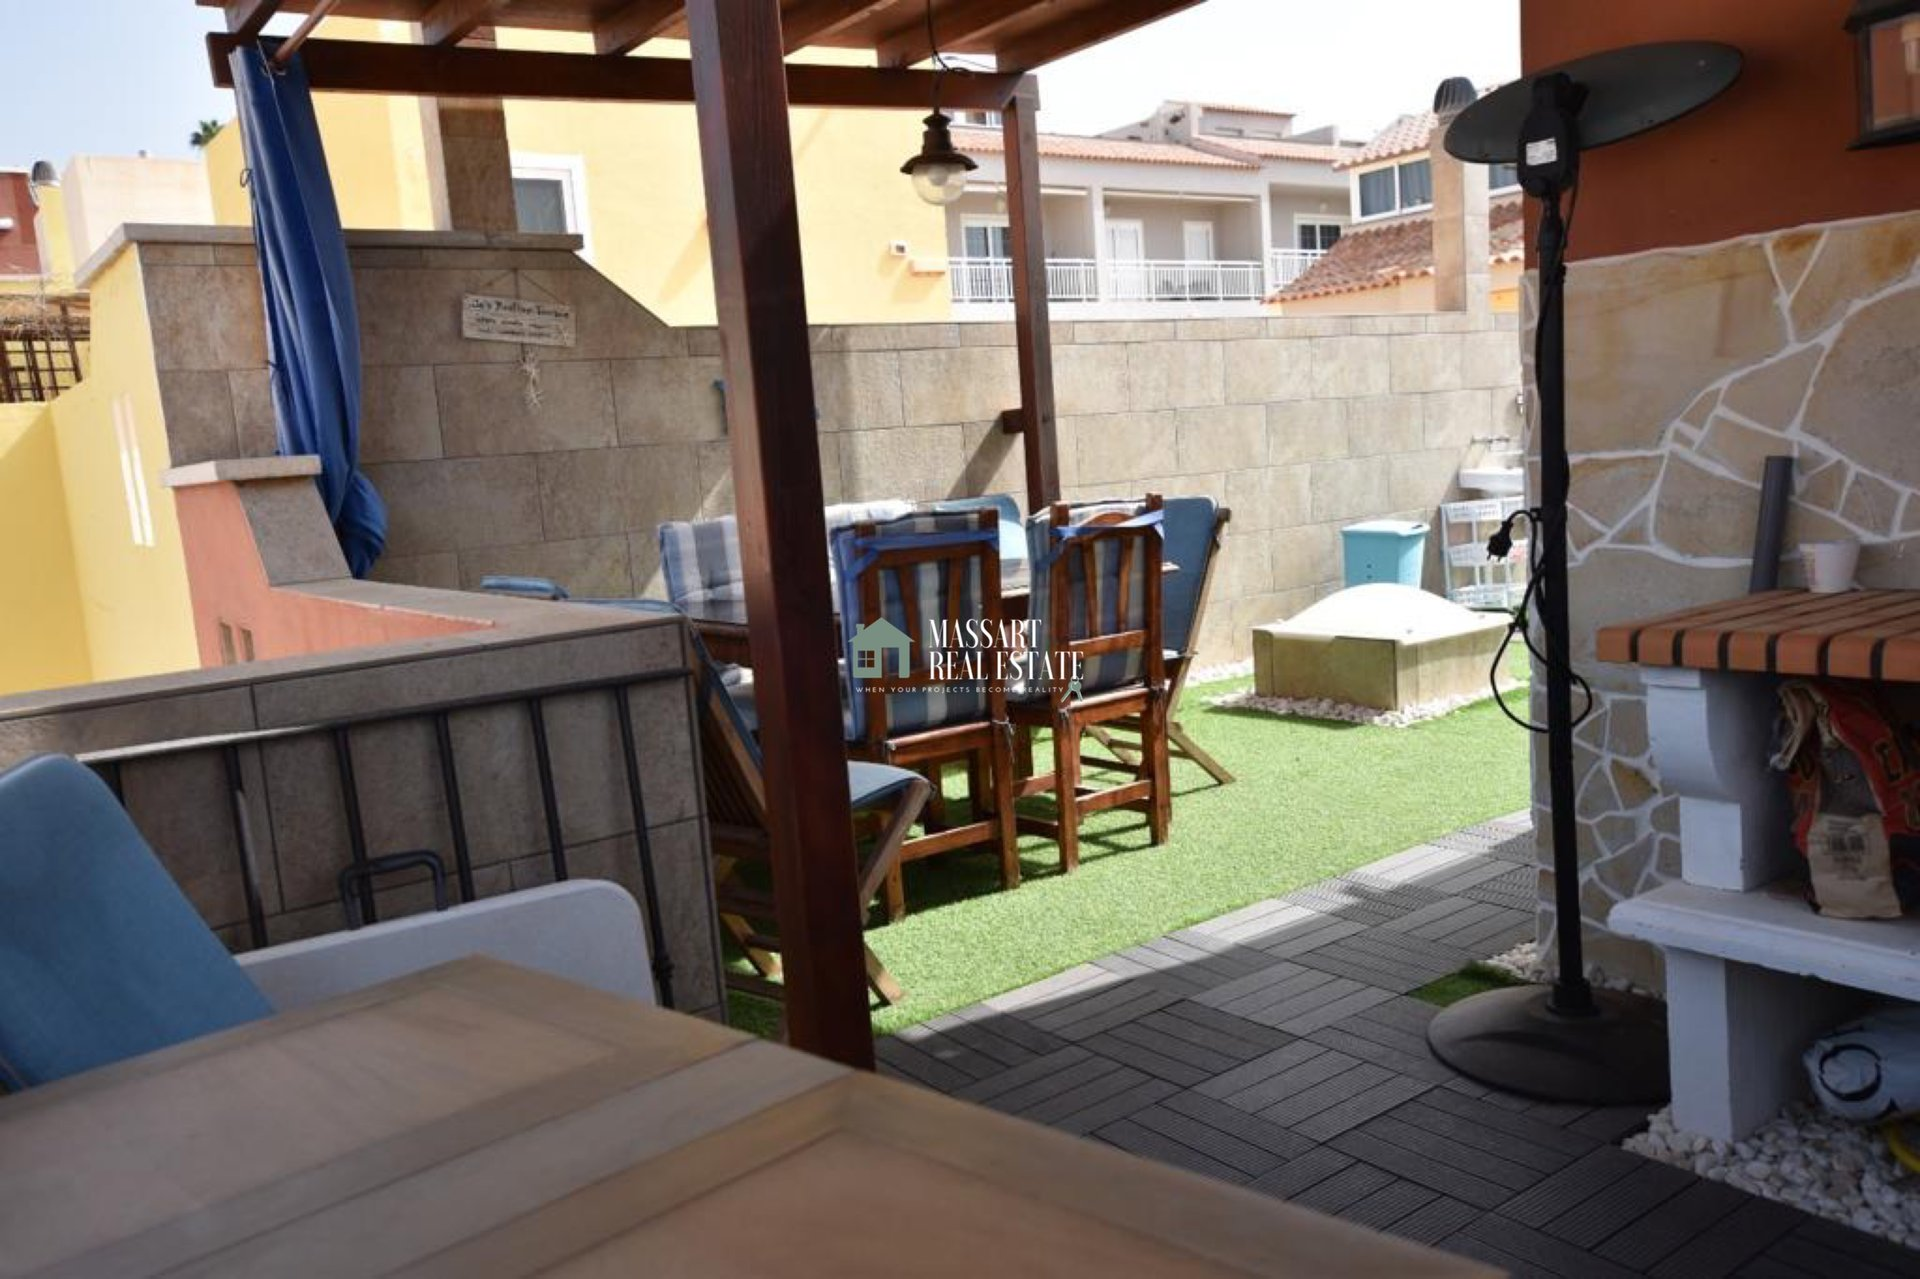 Semi-furnished triplex for SALE in the residential complex Sonia, in a central area of Callao Salvaje ... with privileged views of the sea!